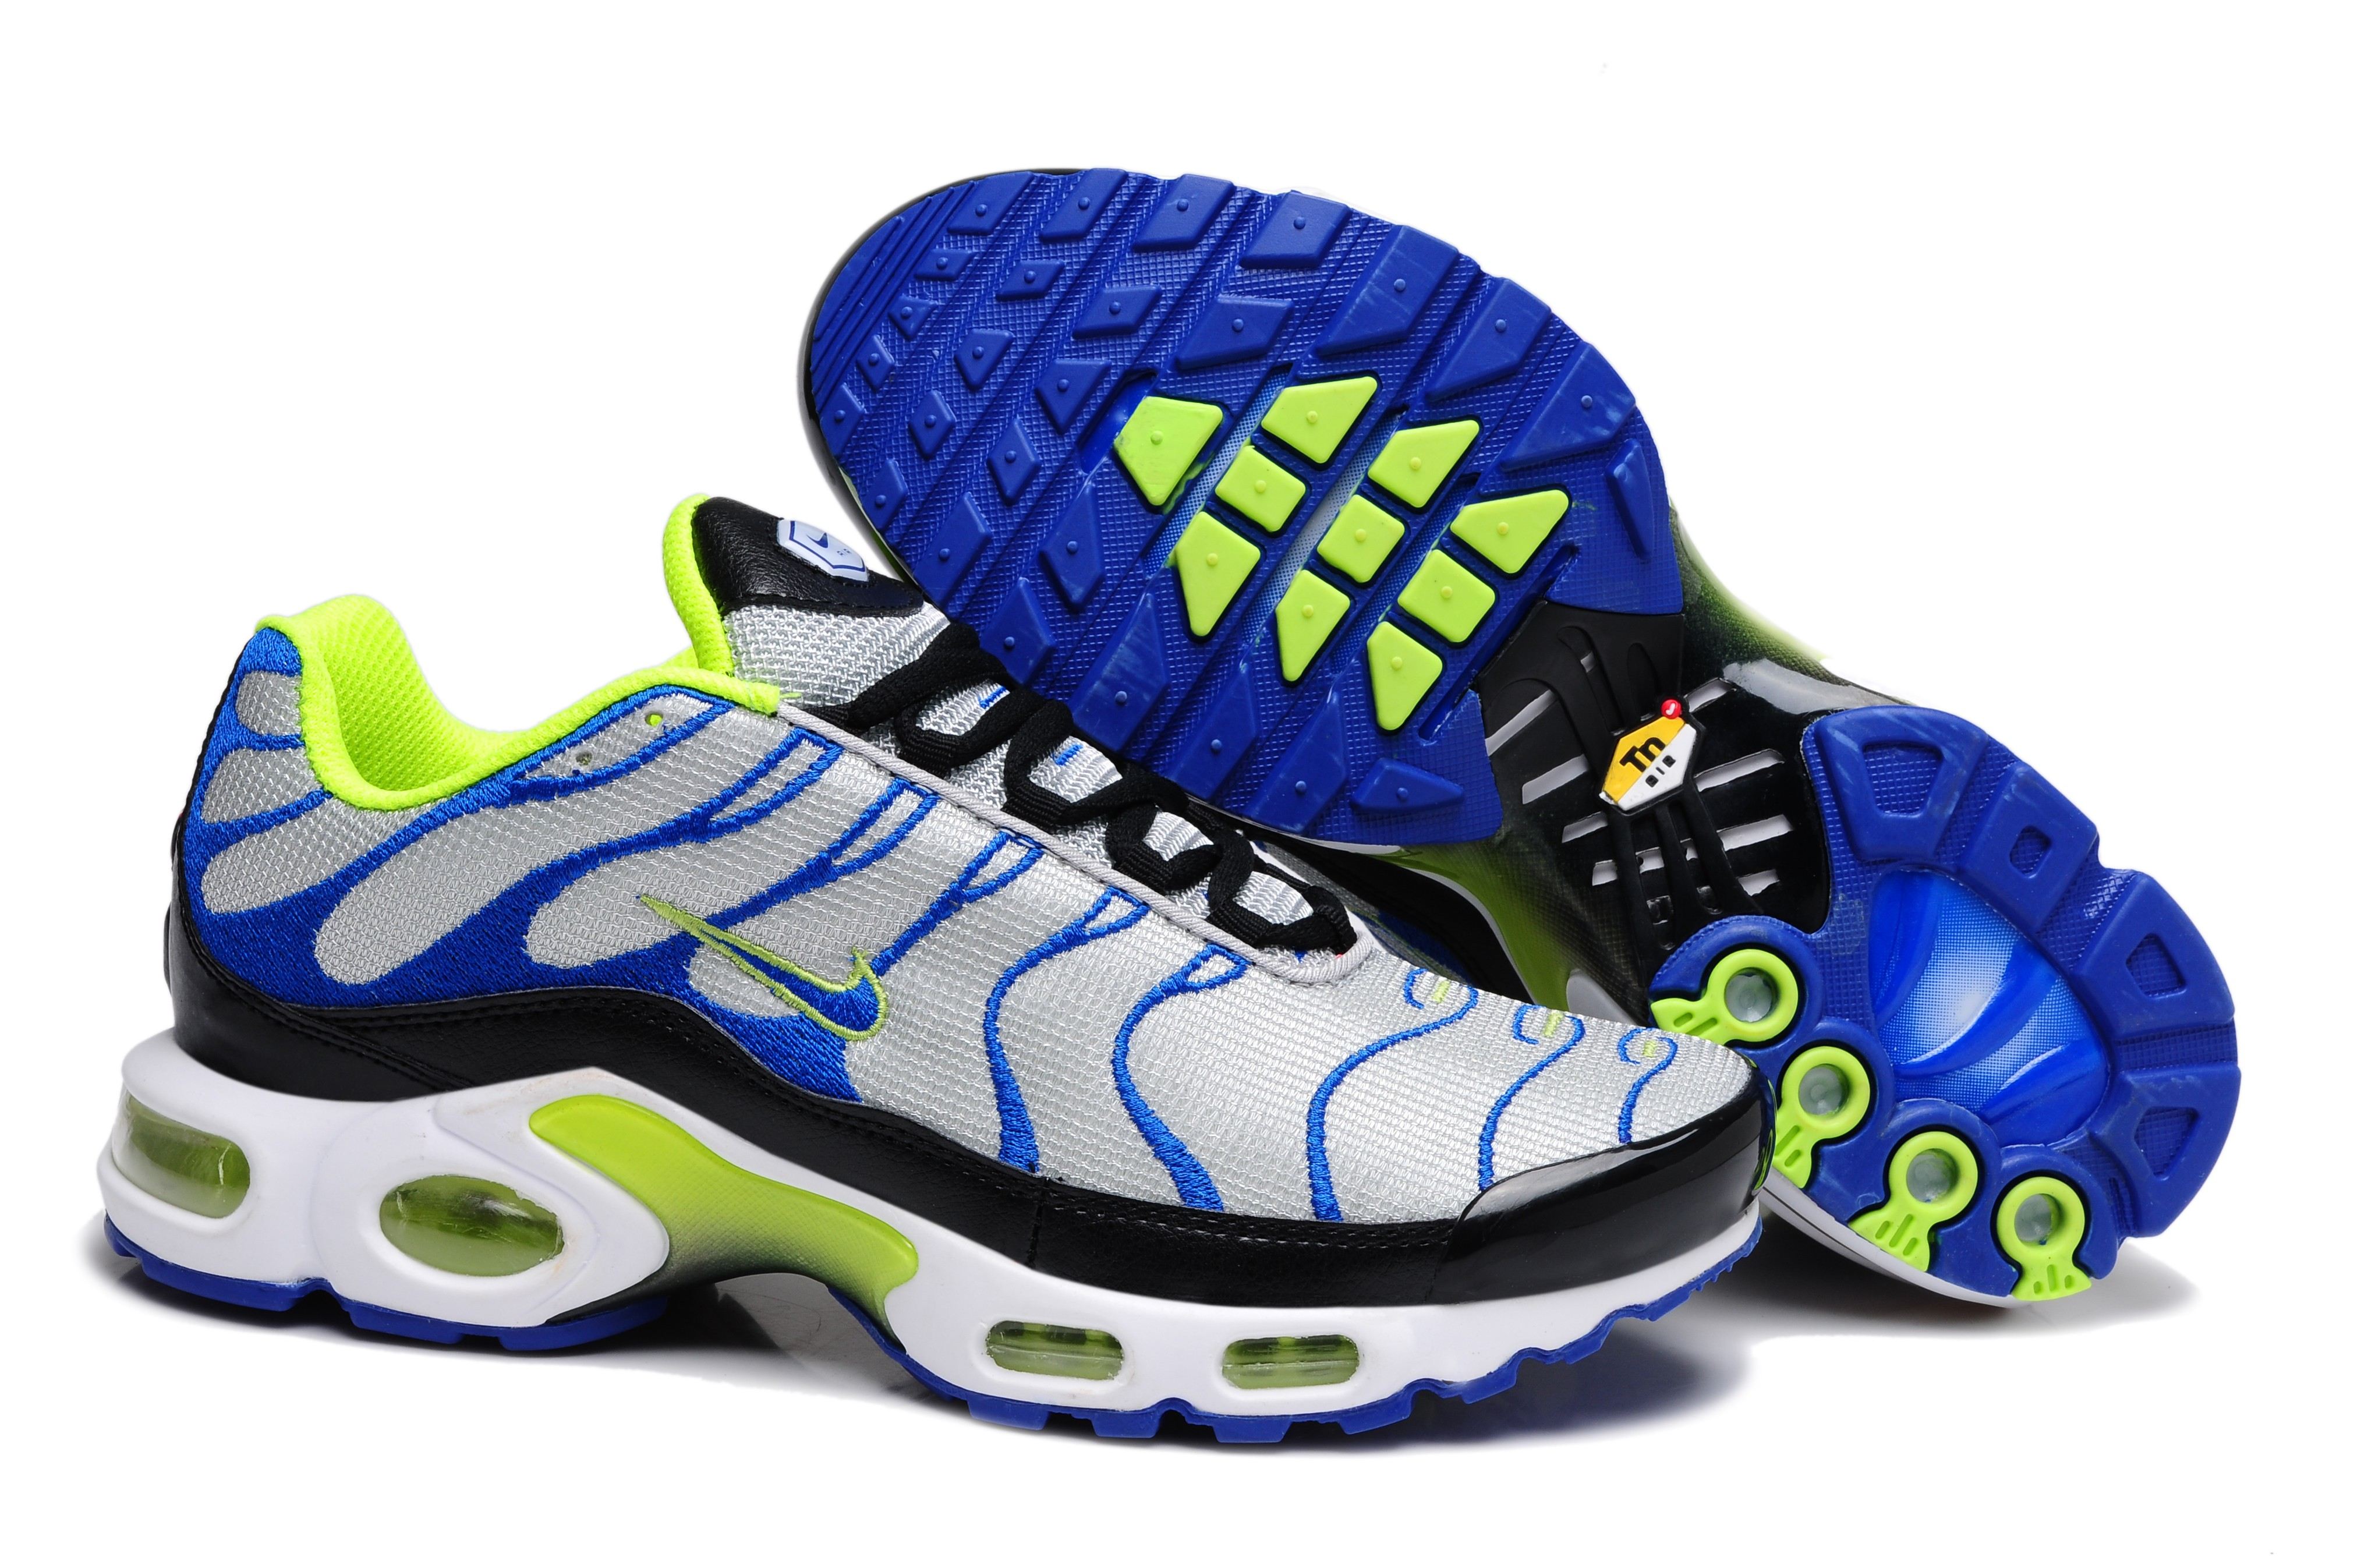 finest selection 9b1a2 06fd8 air max tn requin pas cher chine